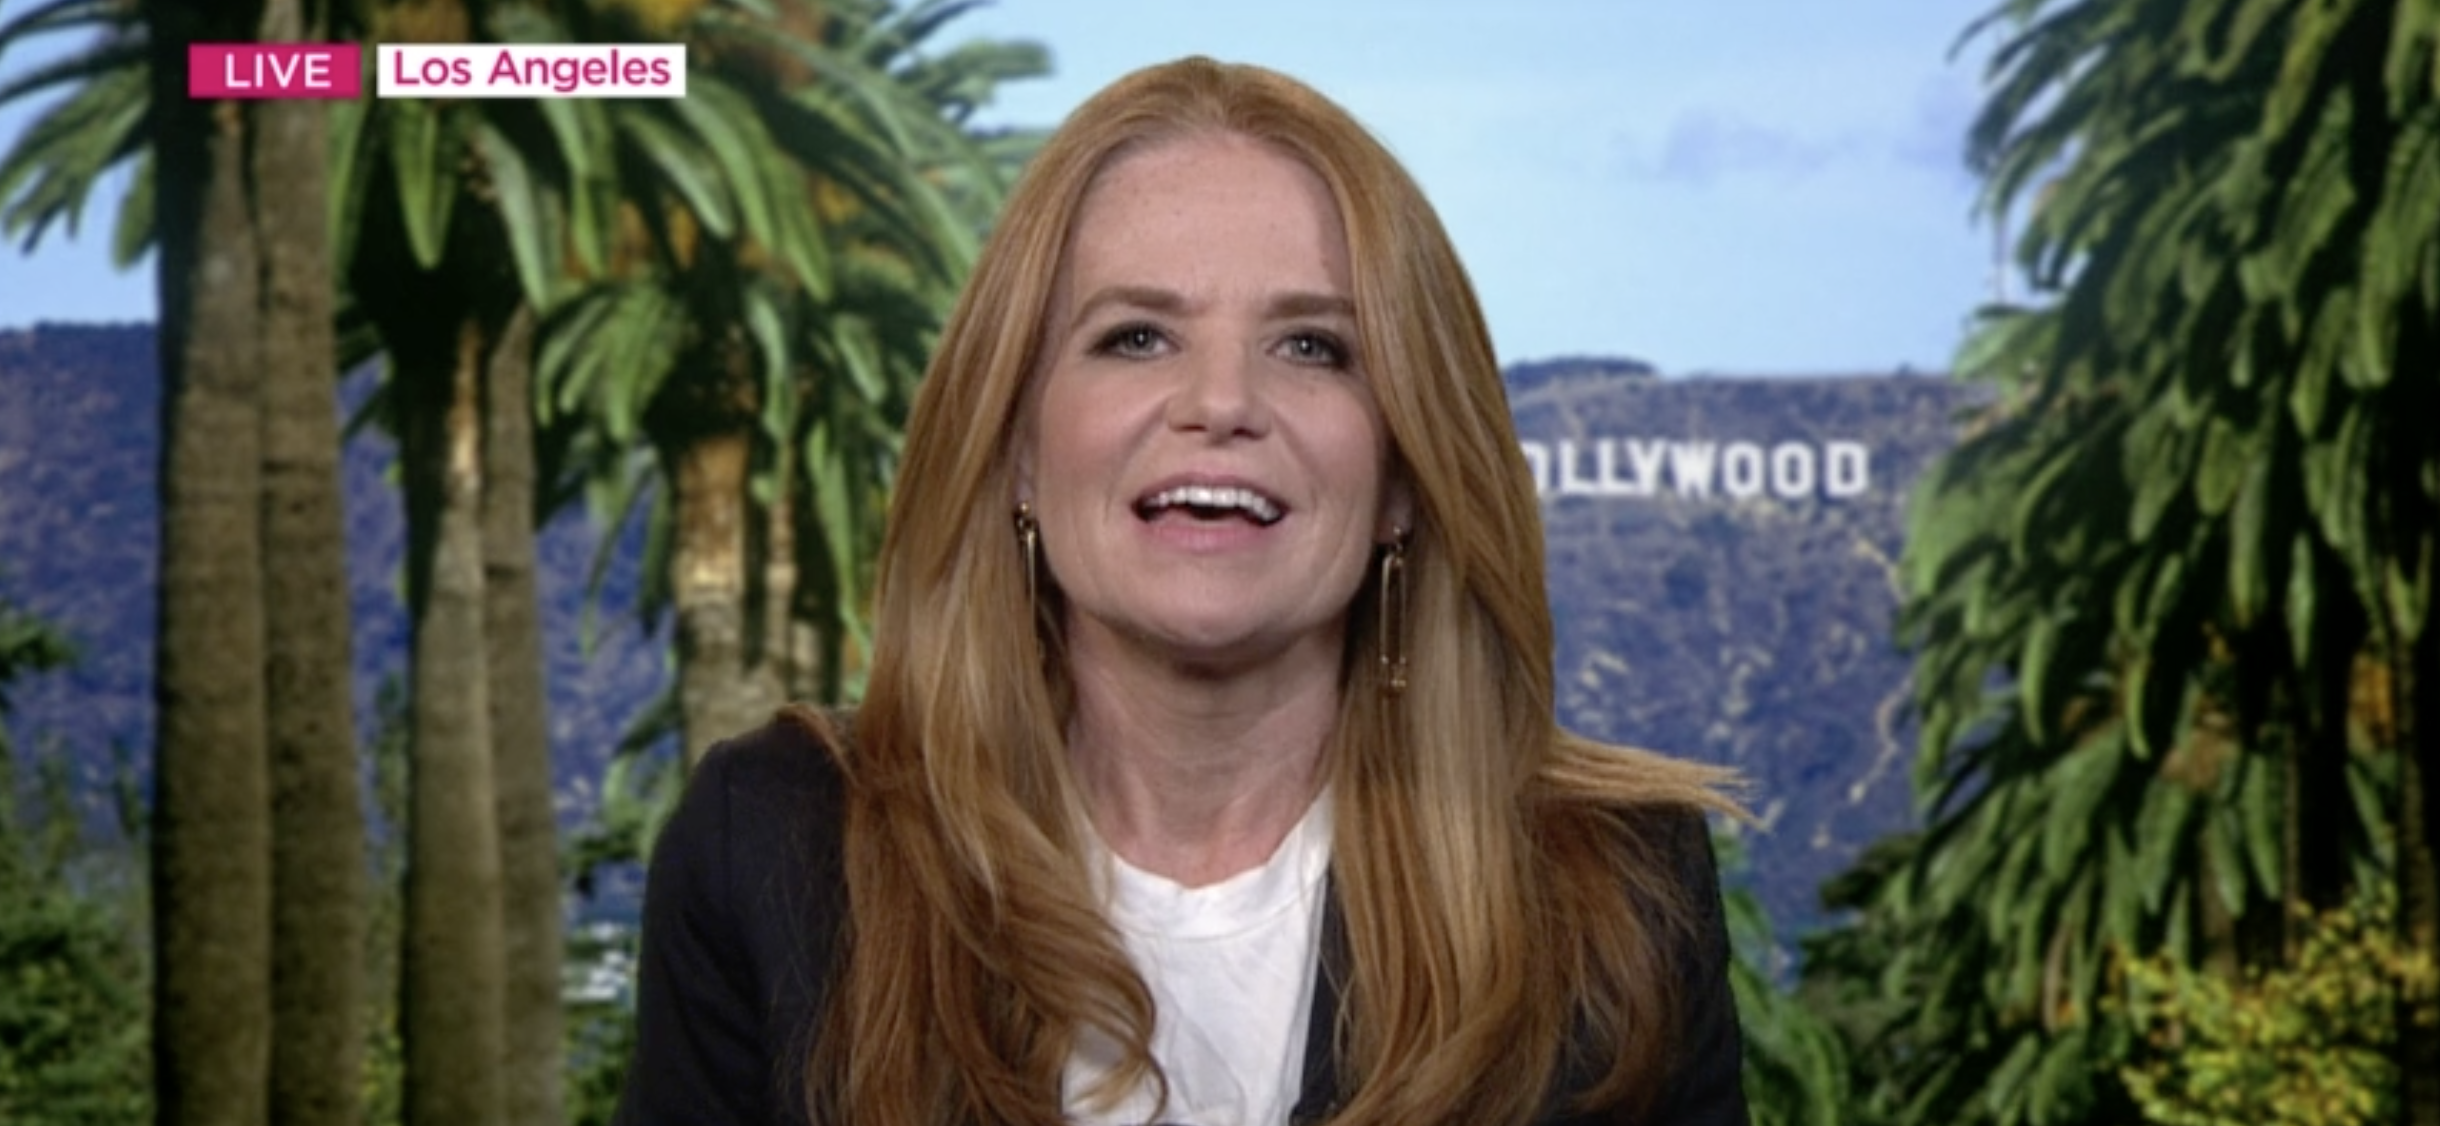 Patsy Palmer reveals she's in talks for her own reality TV show